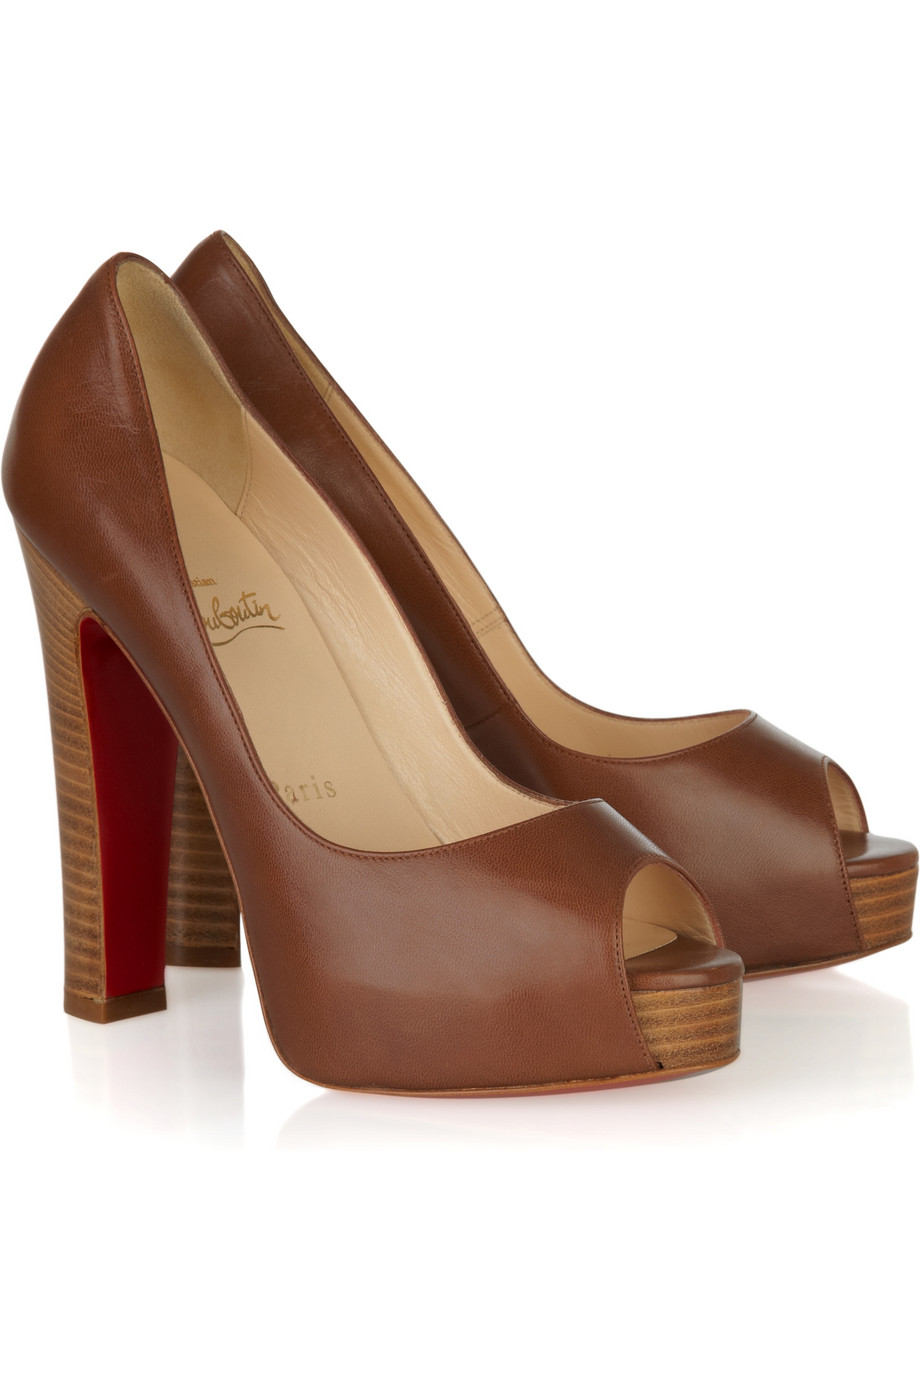 Christian Louboutin Gabin 140 Leather Open Toe Pumps In